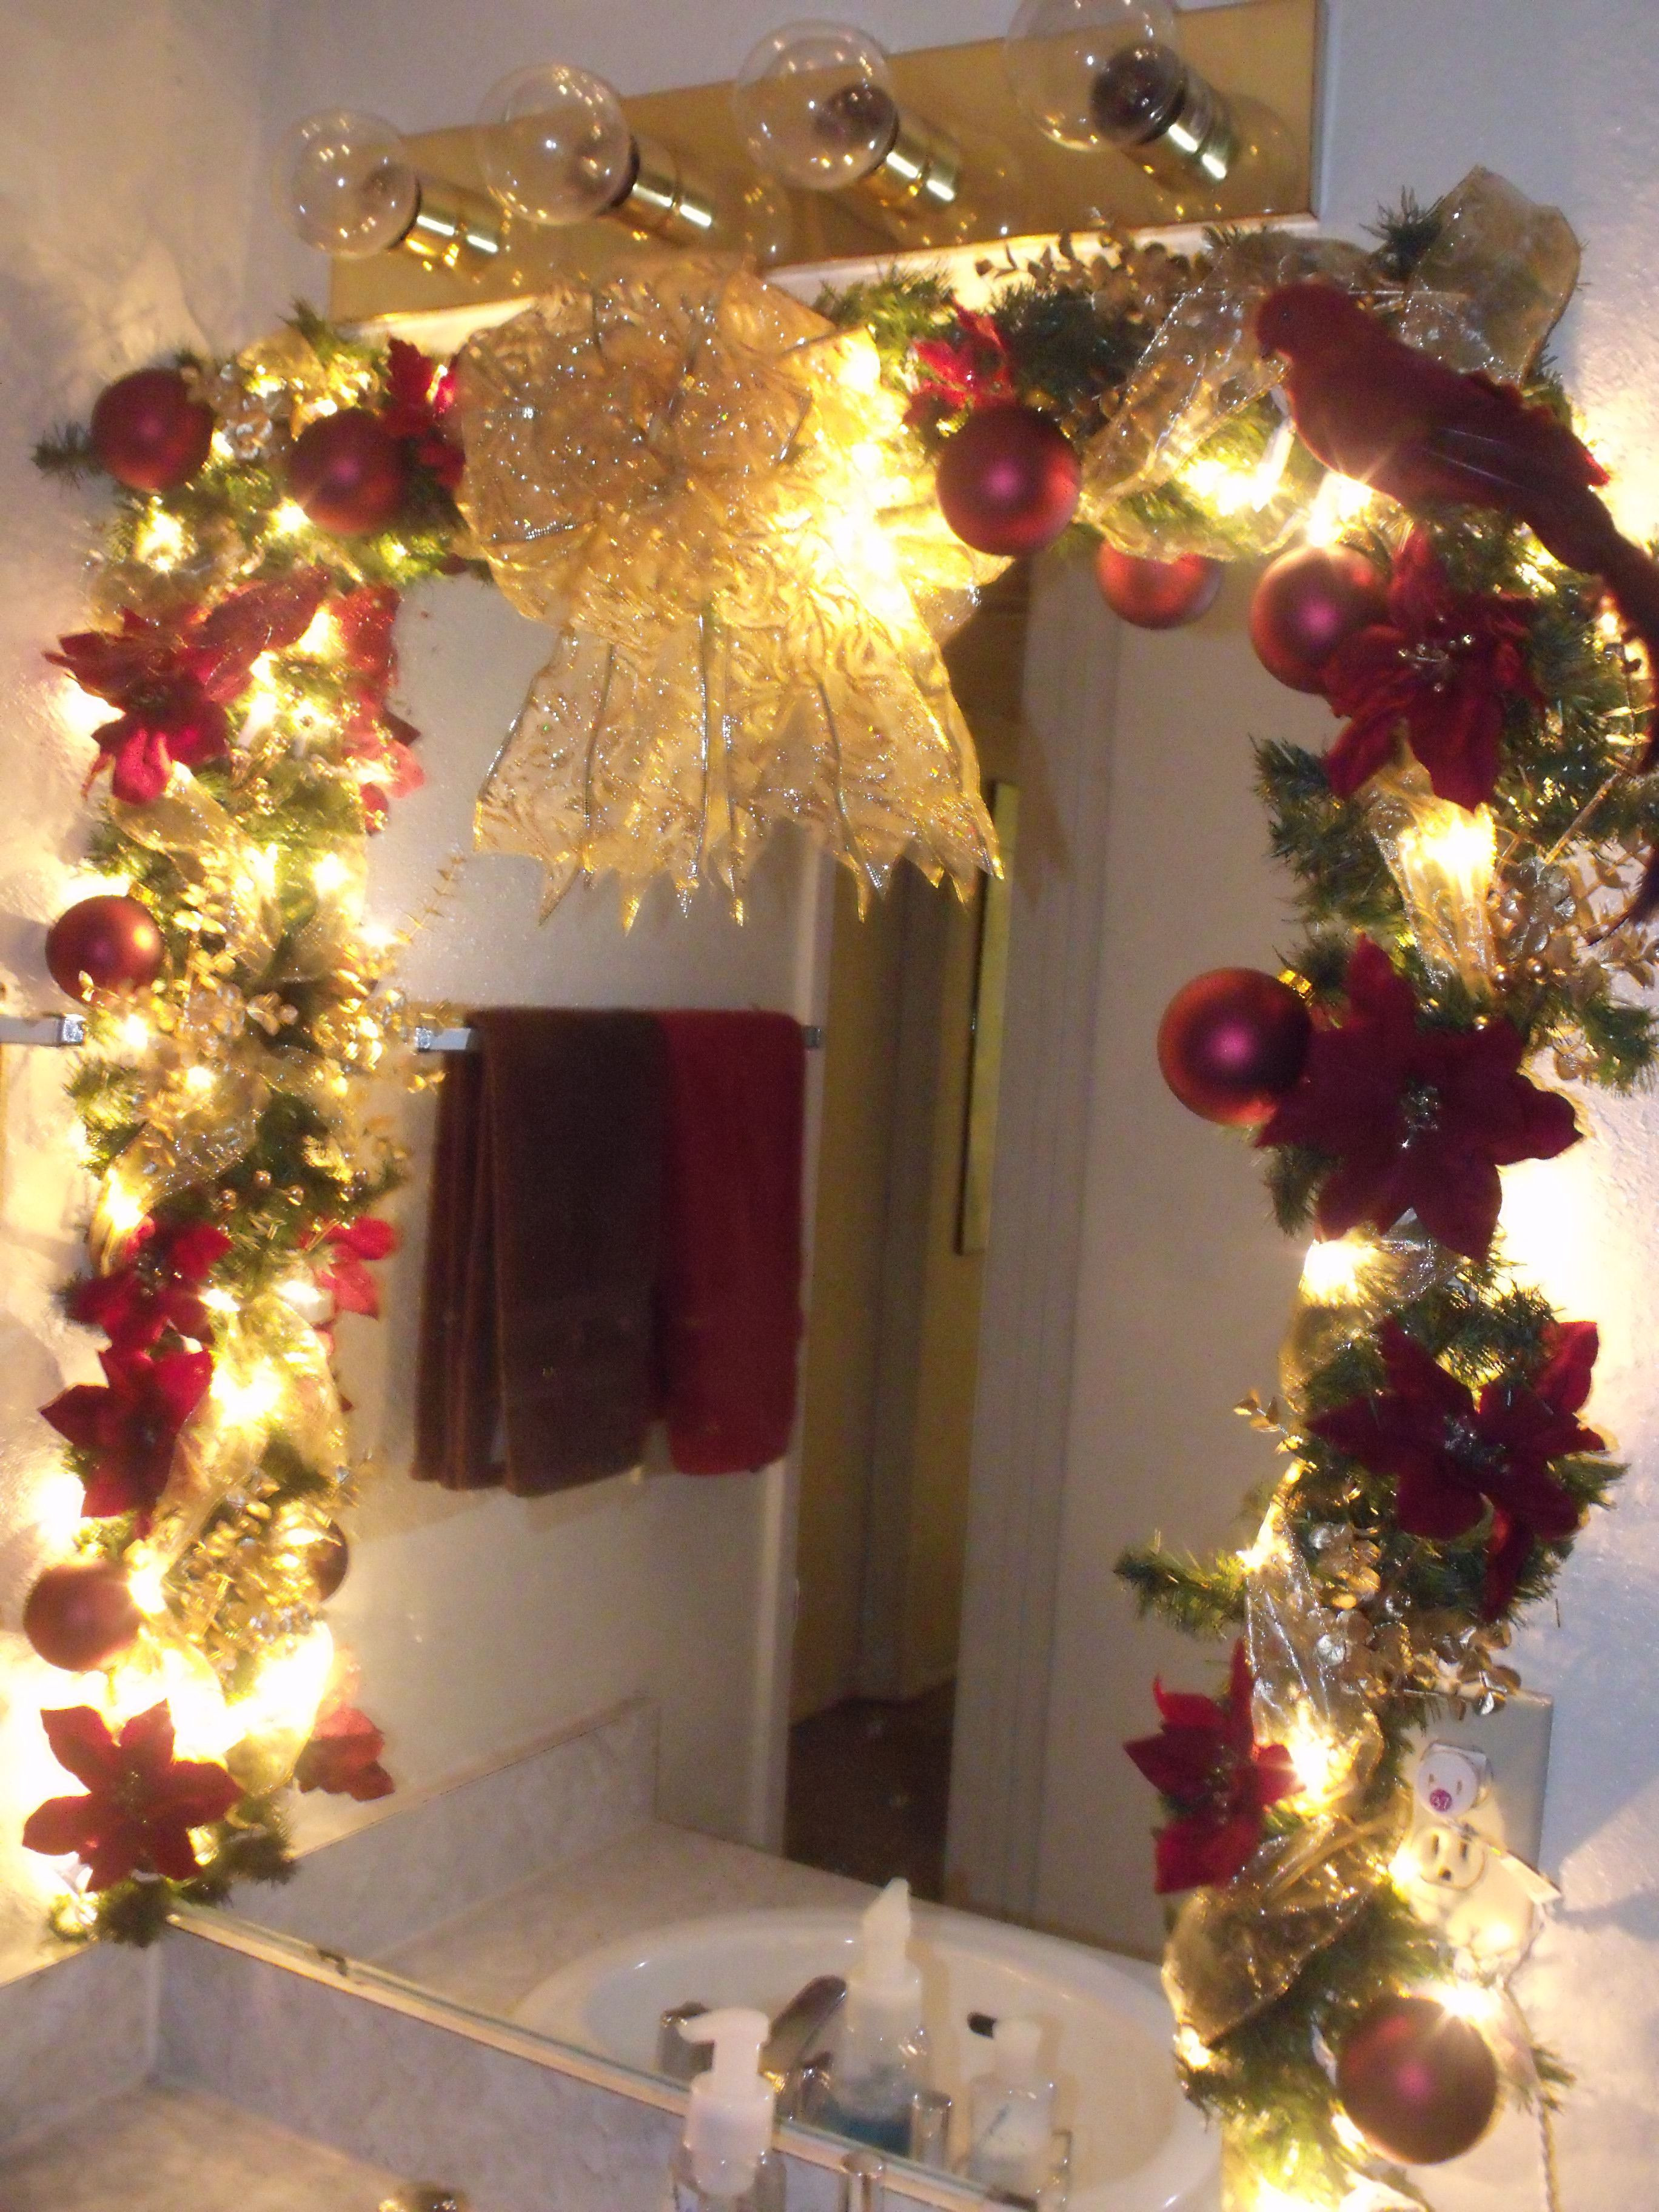 Christmas Decorations for the Bathroom Awesome Poinsettia Mirror Garland for the Bathroom